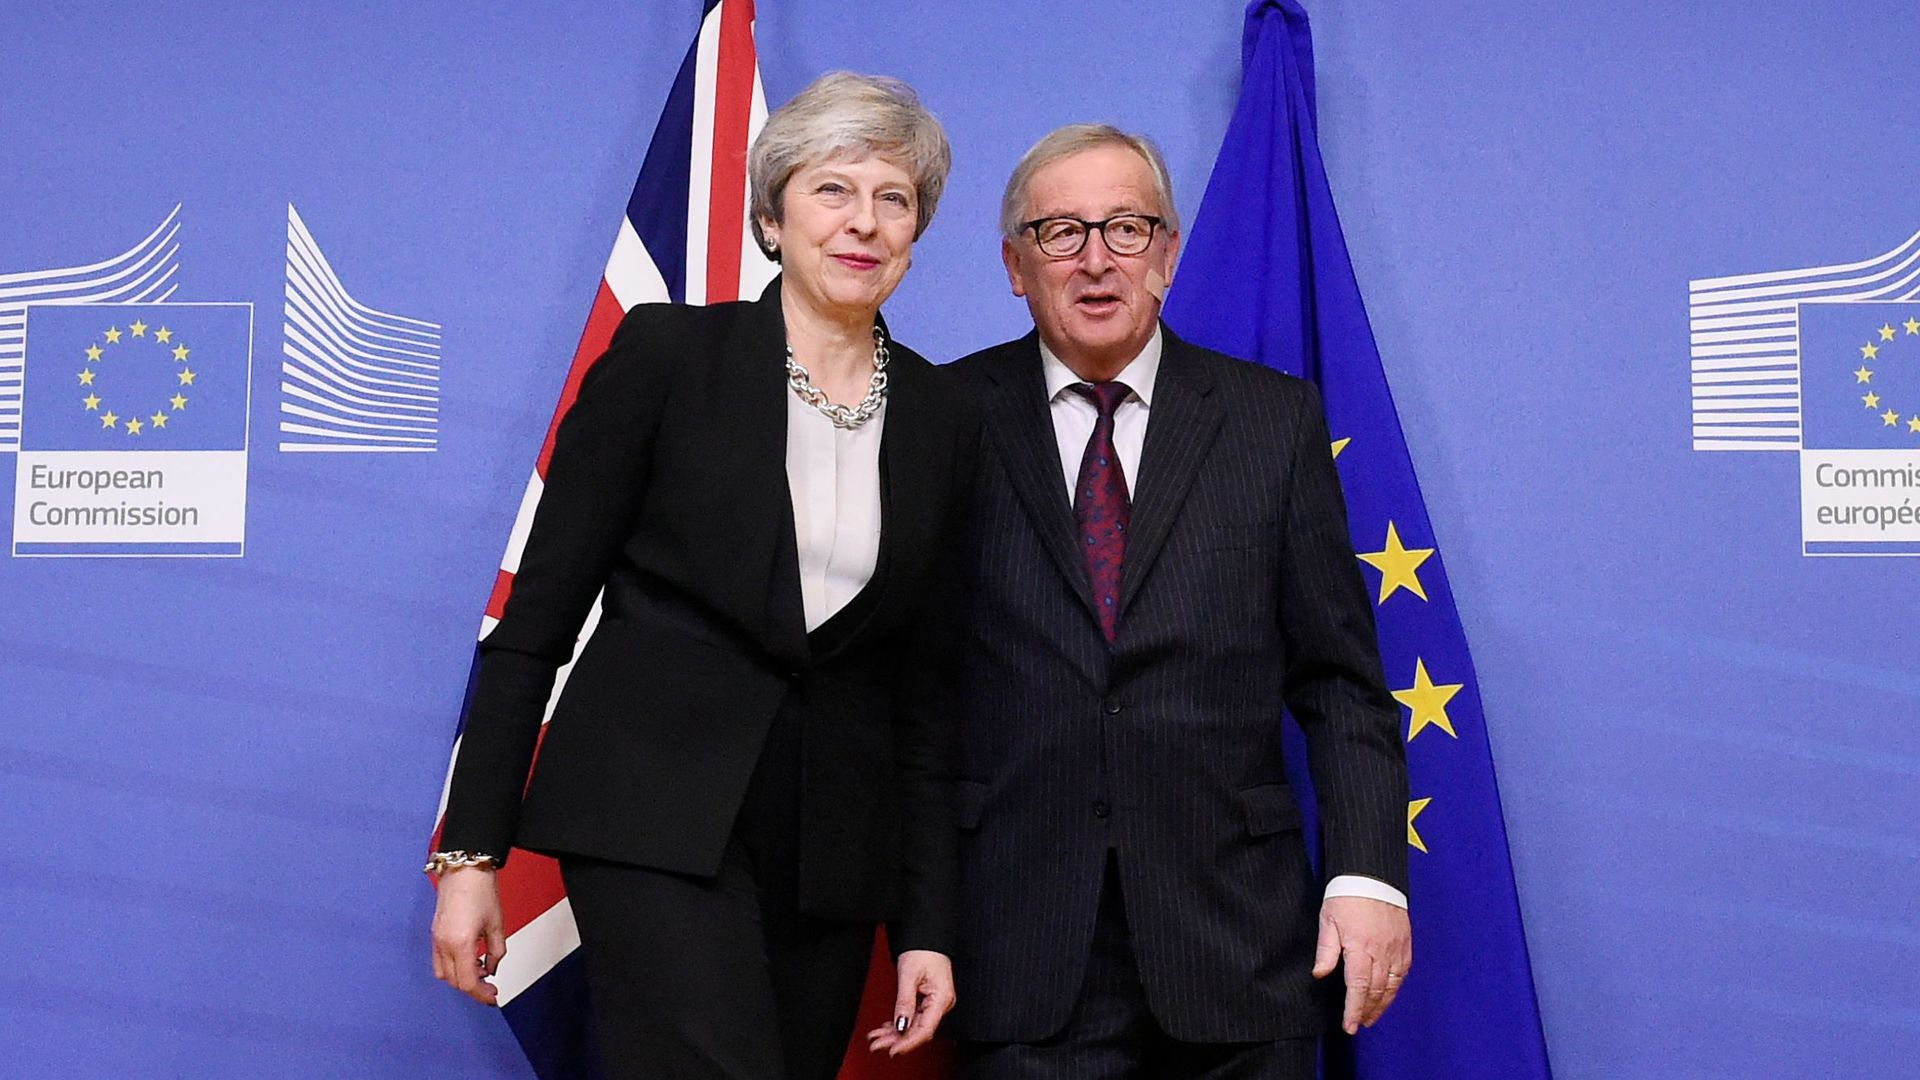 Theresa May spoke with European Commission president Jean-Claude Juncker Sunday evening.